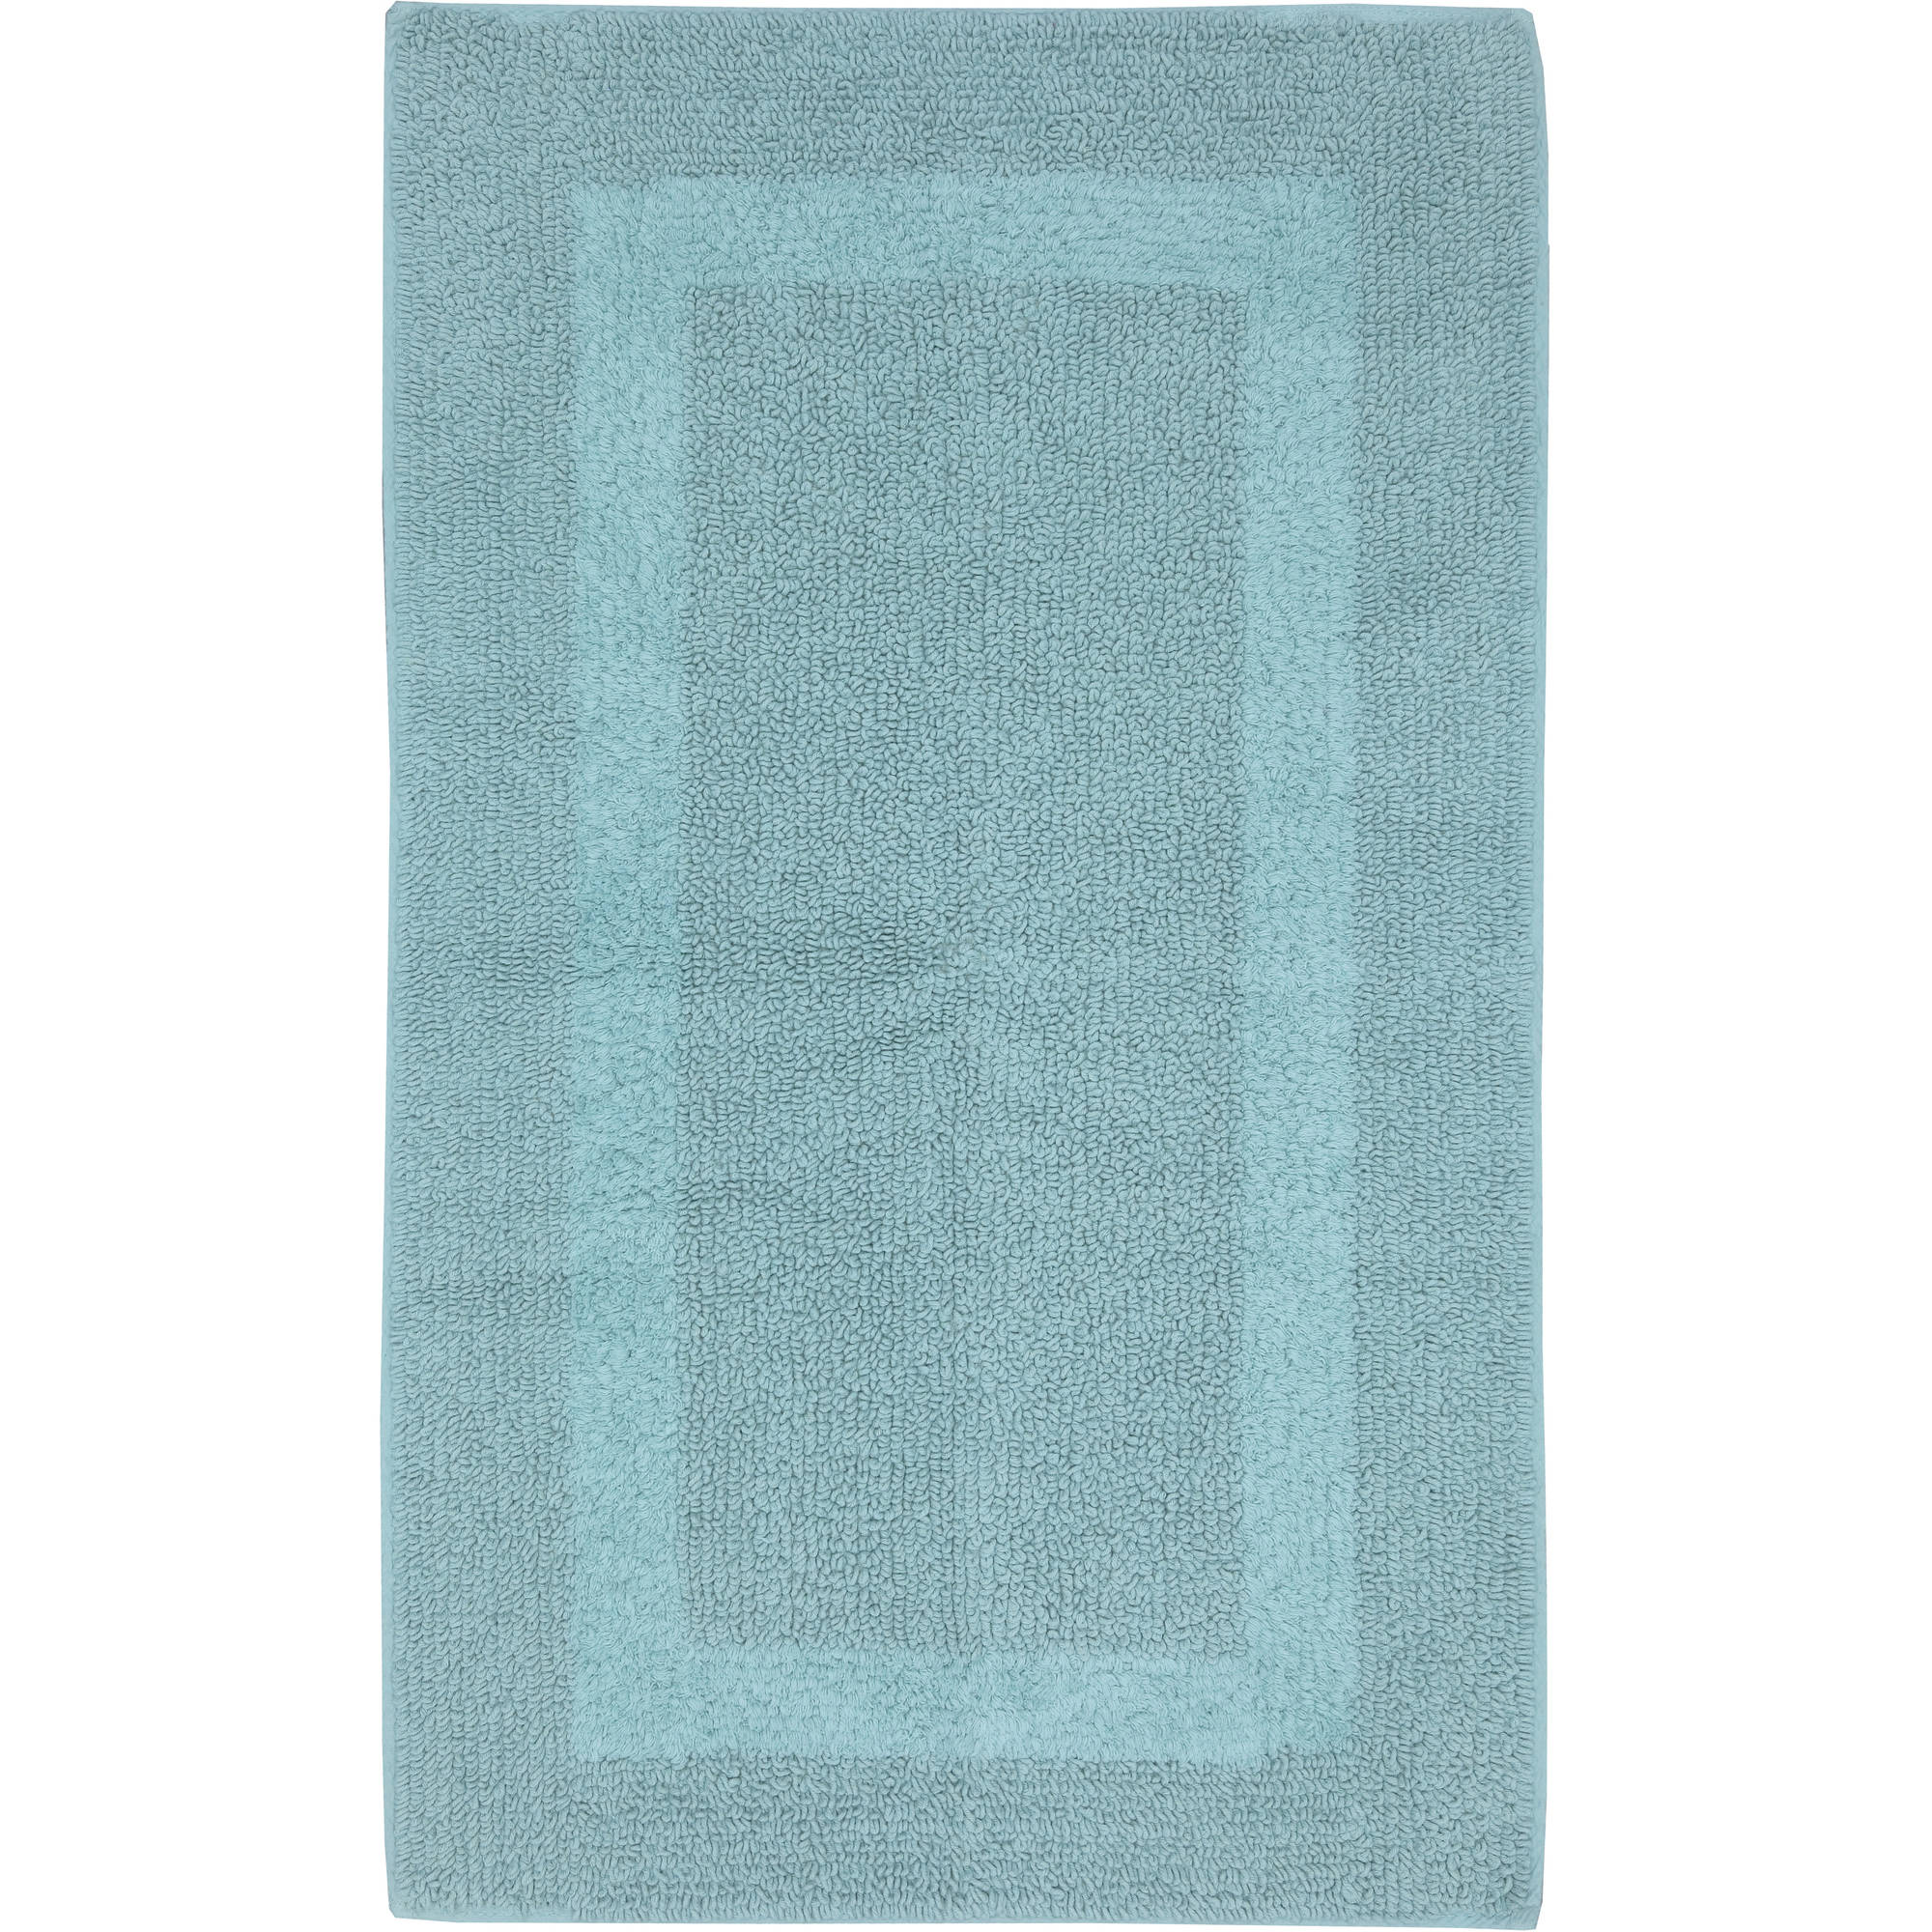 Better Homes and Gardens Cotton Reversible Bath Rug Collection